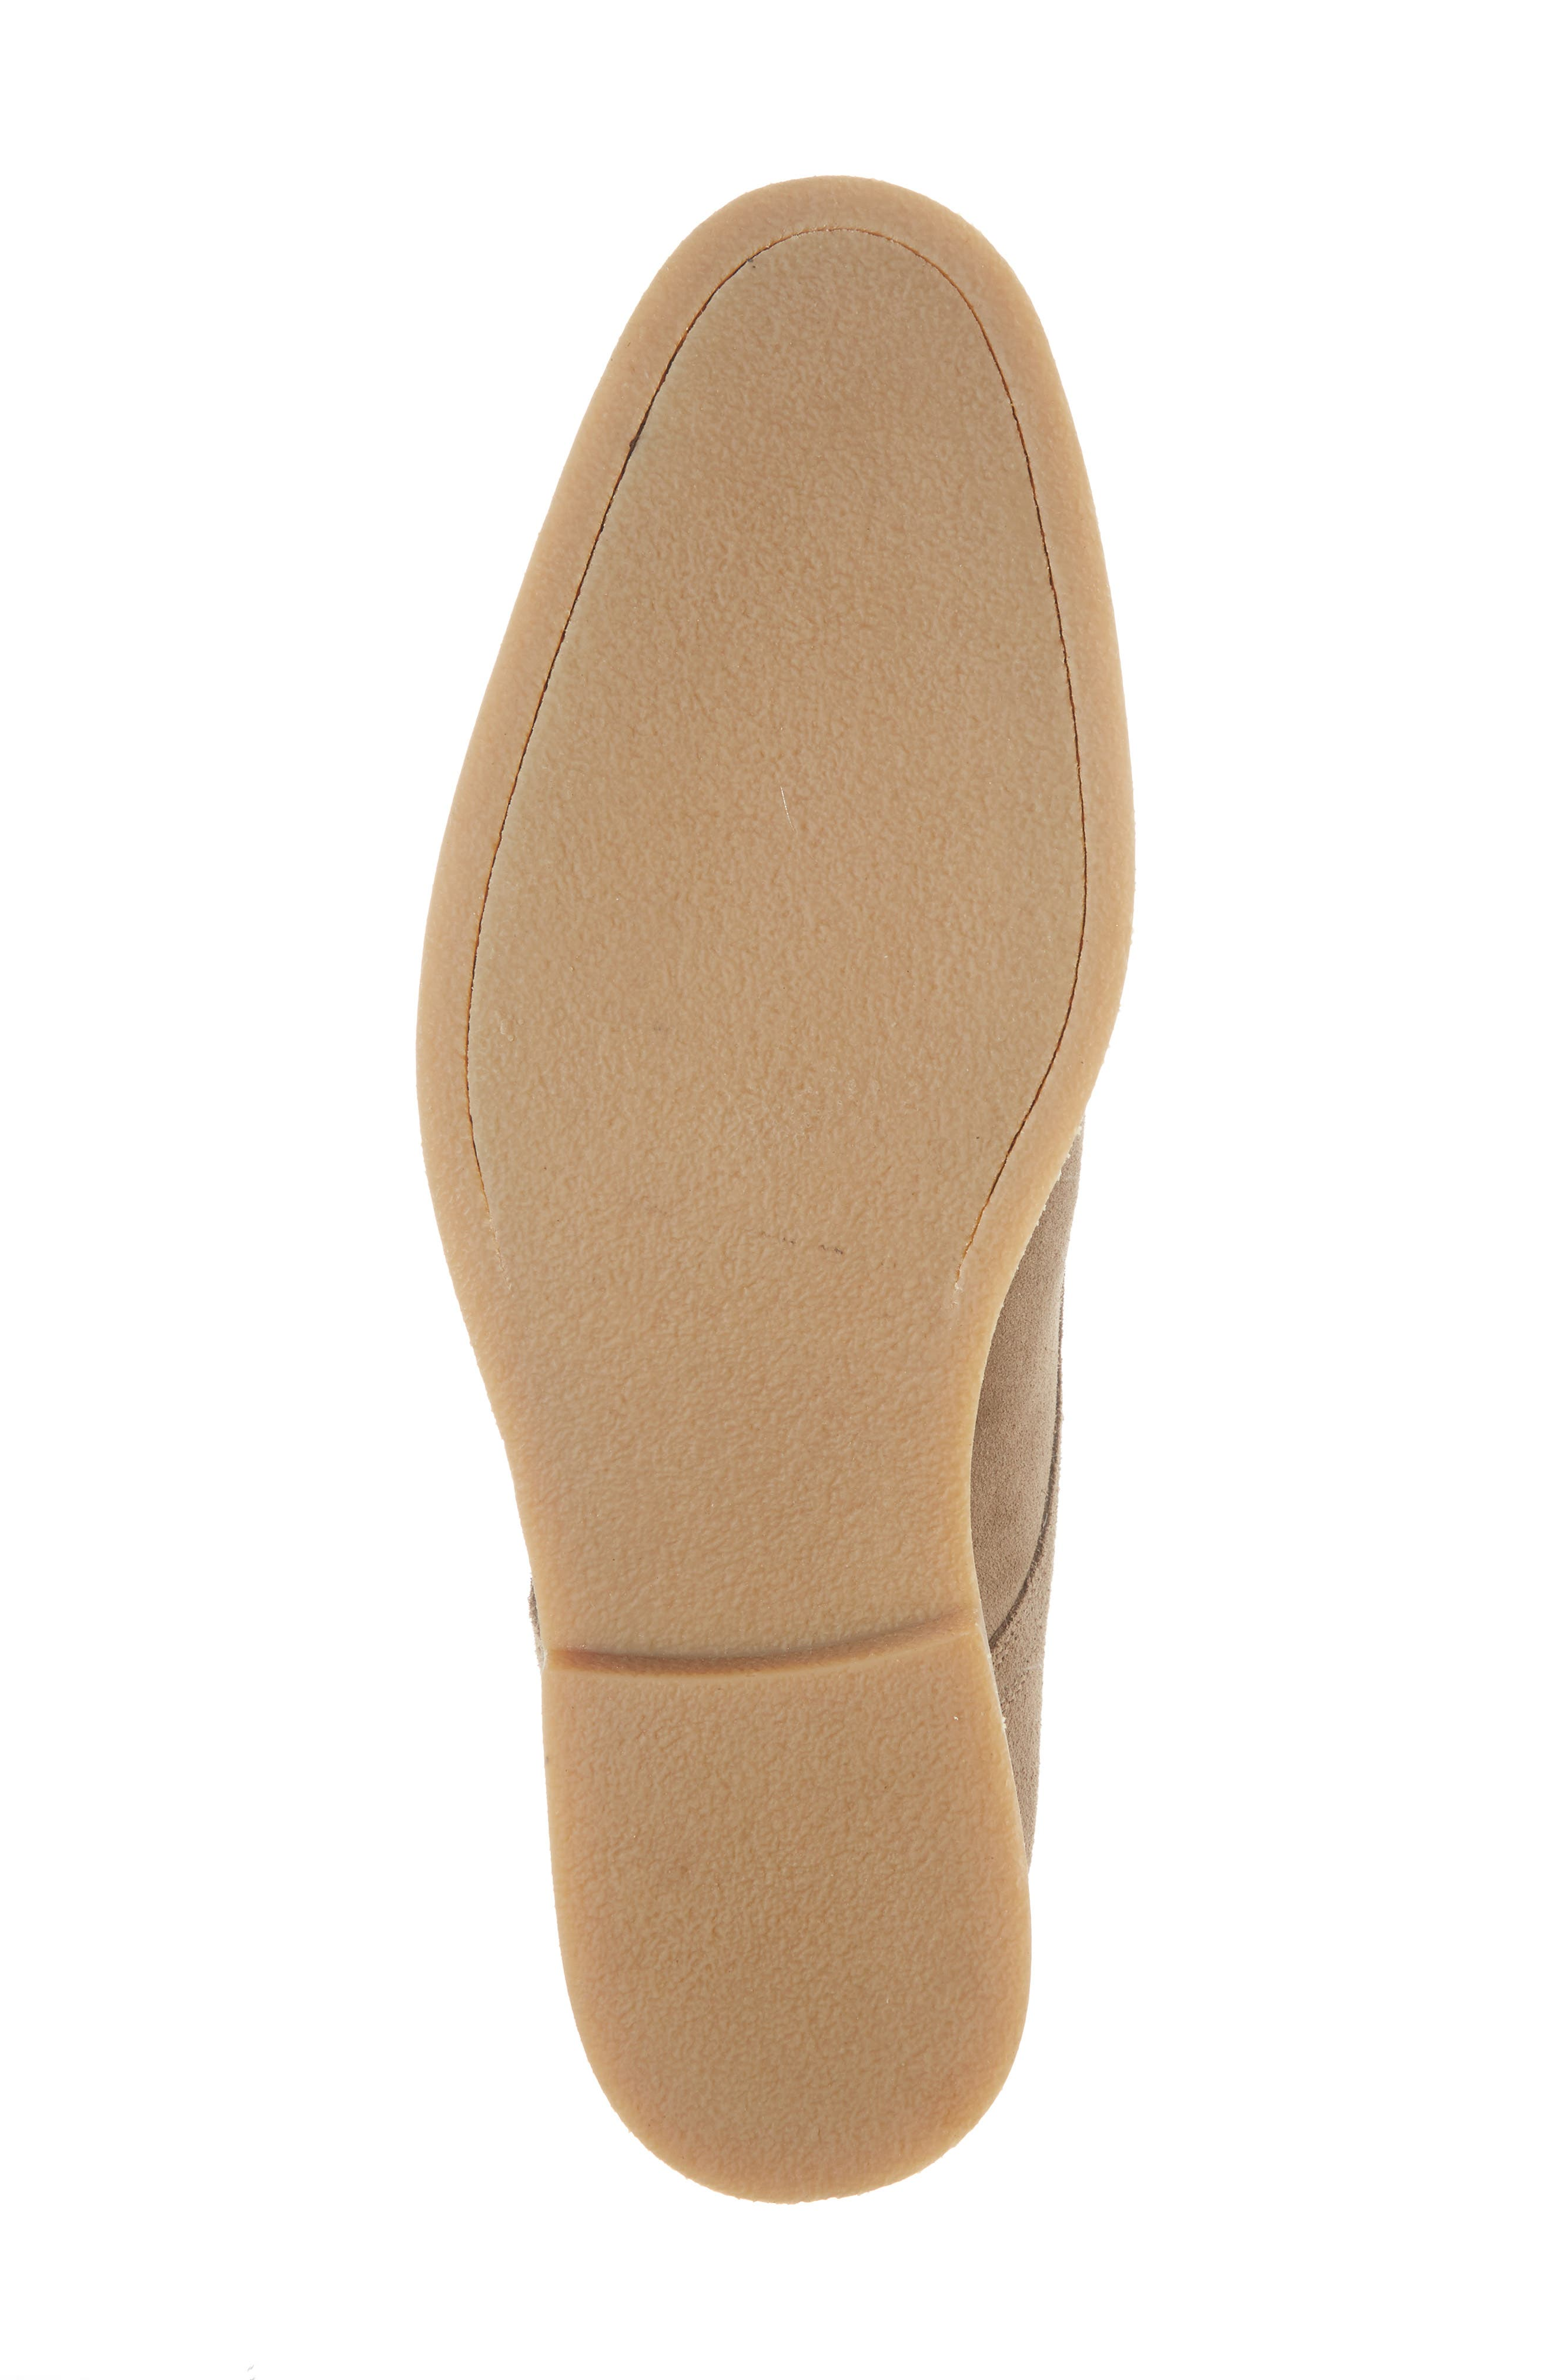 Santino Plain Toe Derby,                             Alternate thumbnail 6, color,                             Taupe Suede